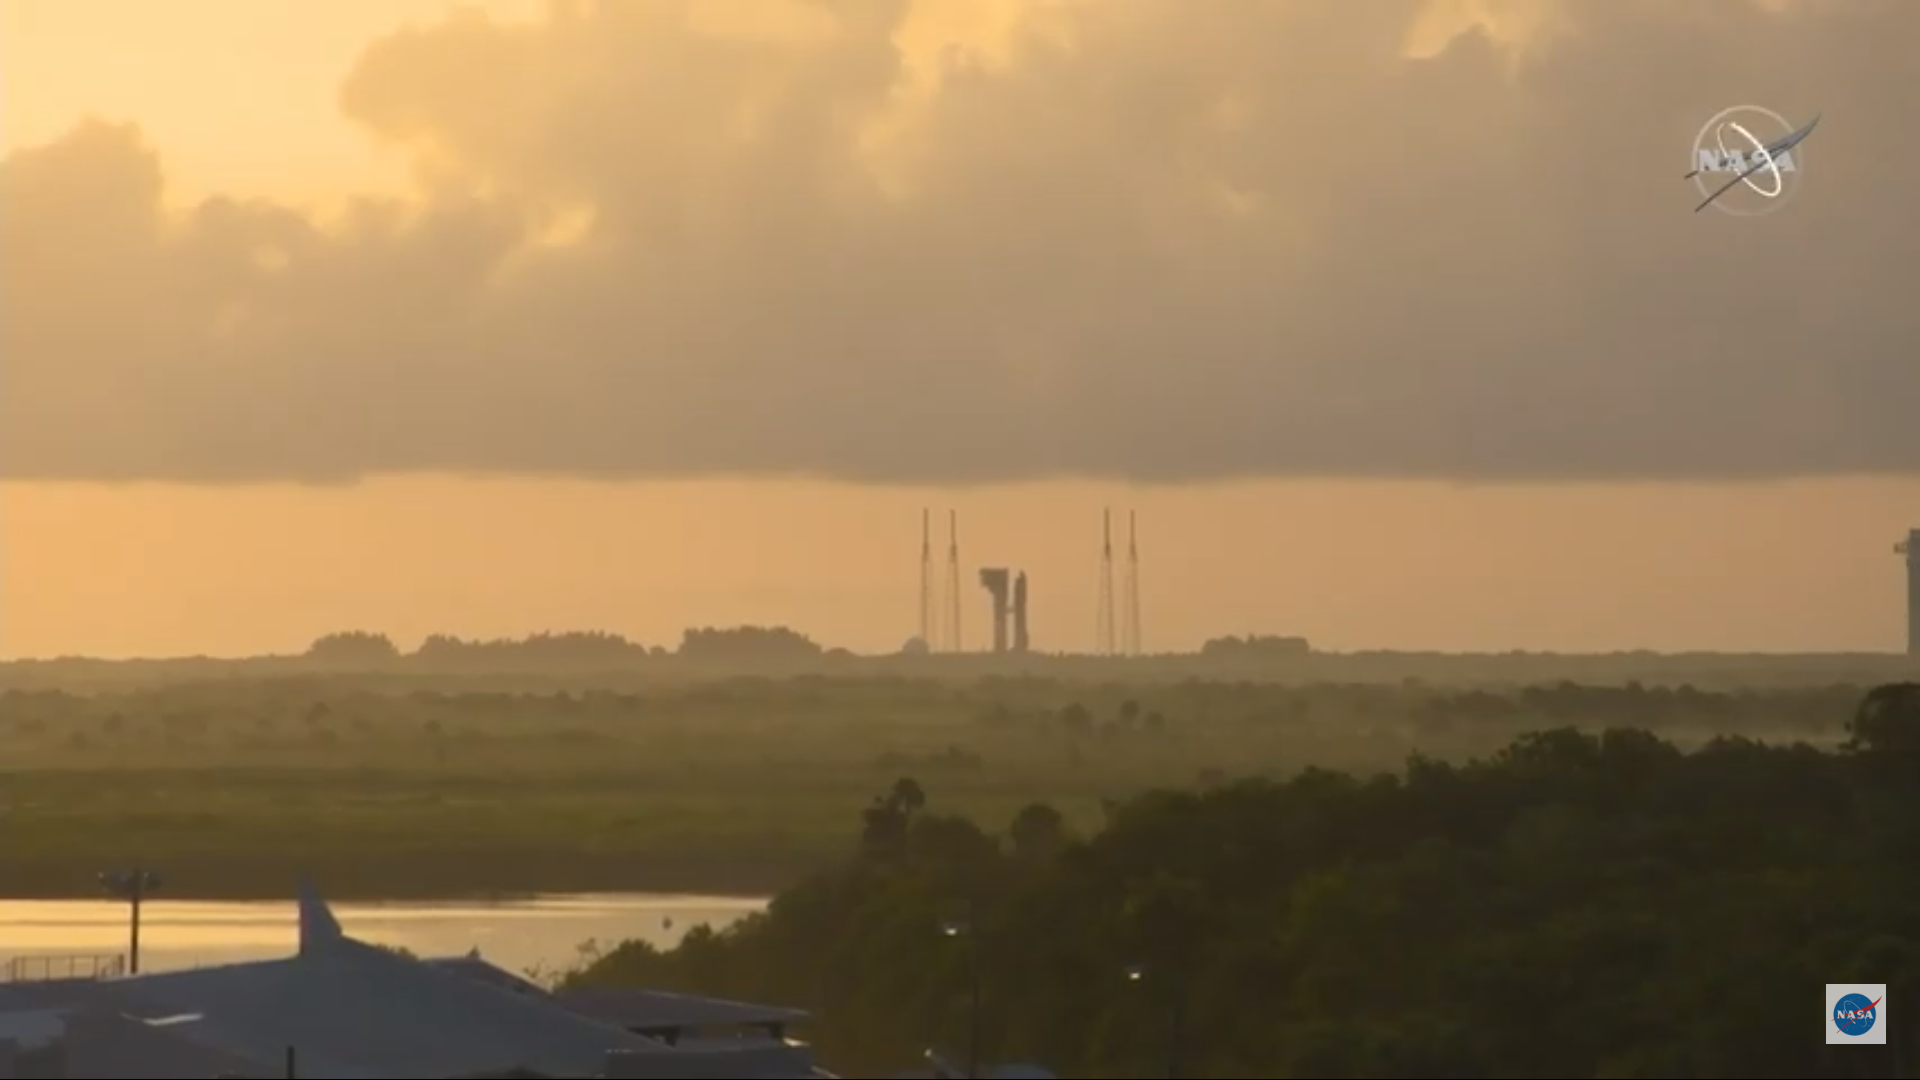 A view of the Atlas V rocket on the launch pad before blast off on July 30, 2020.